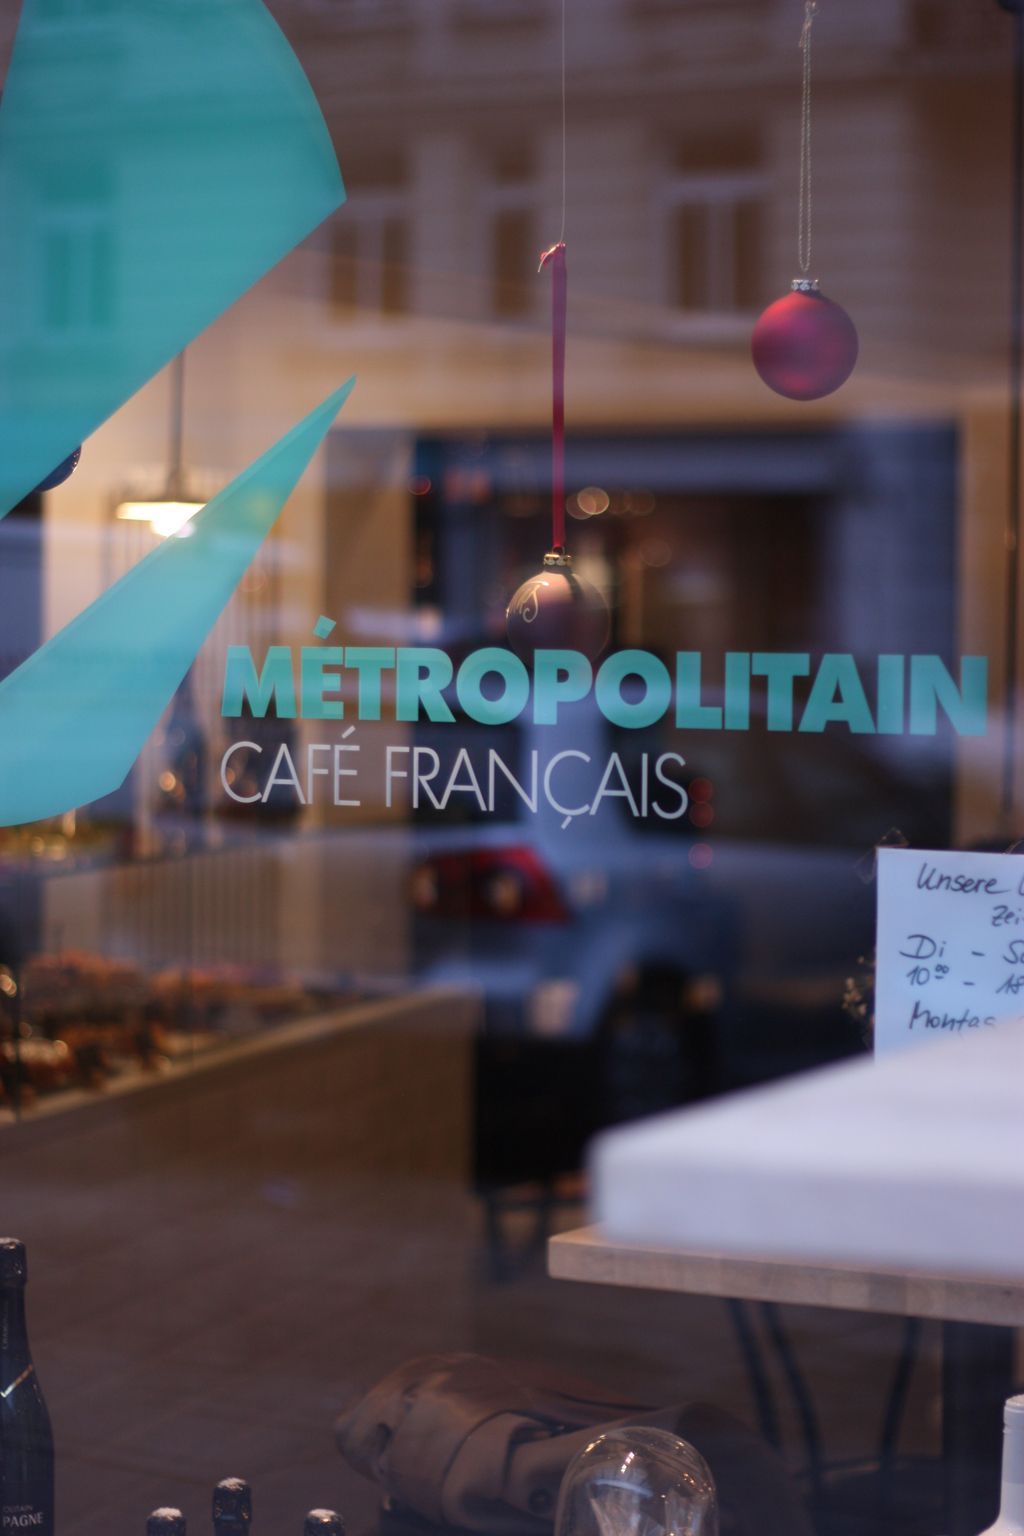 the window of the metropolitain café in hamburg